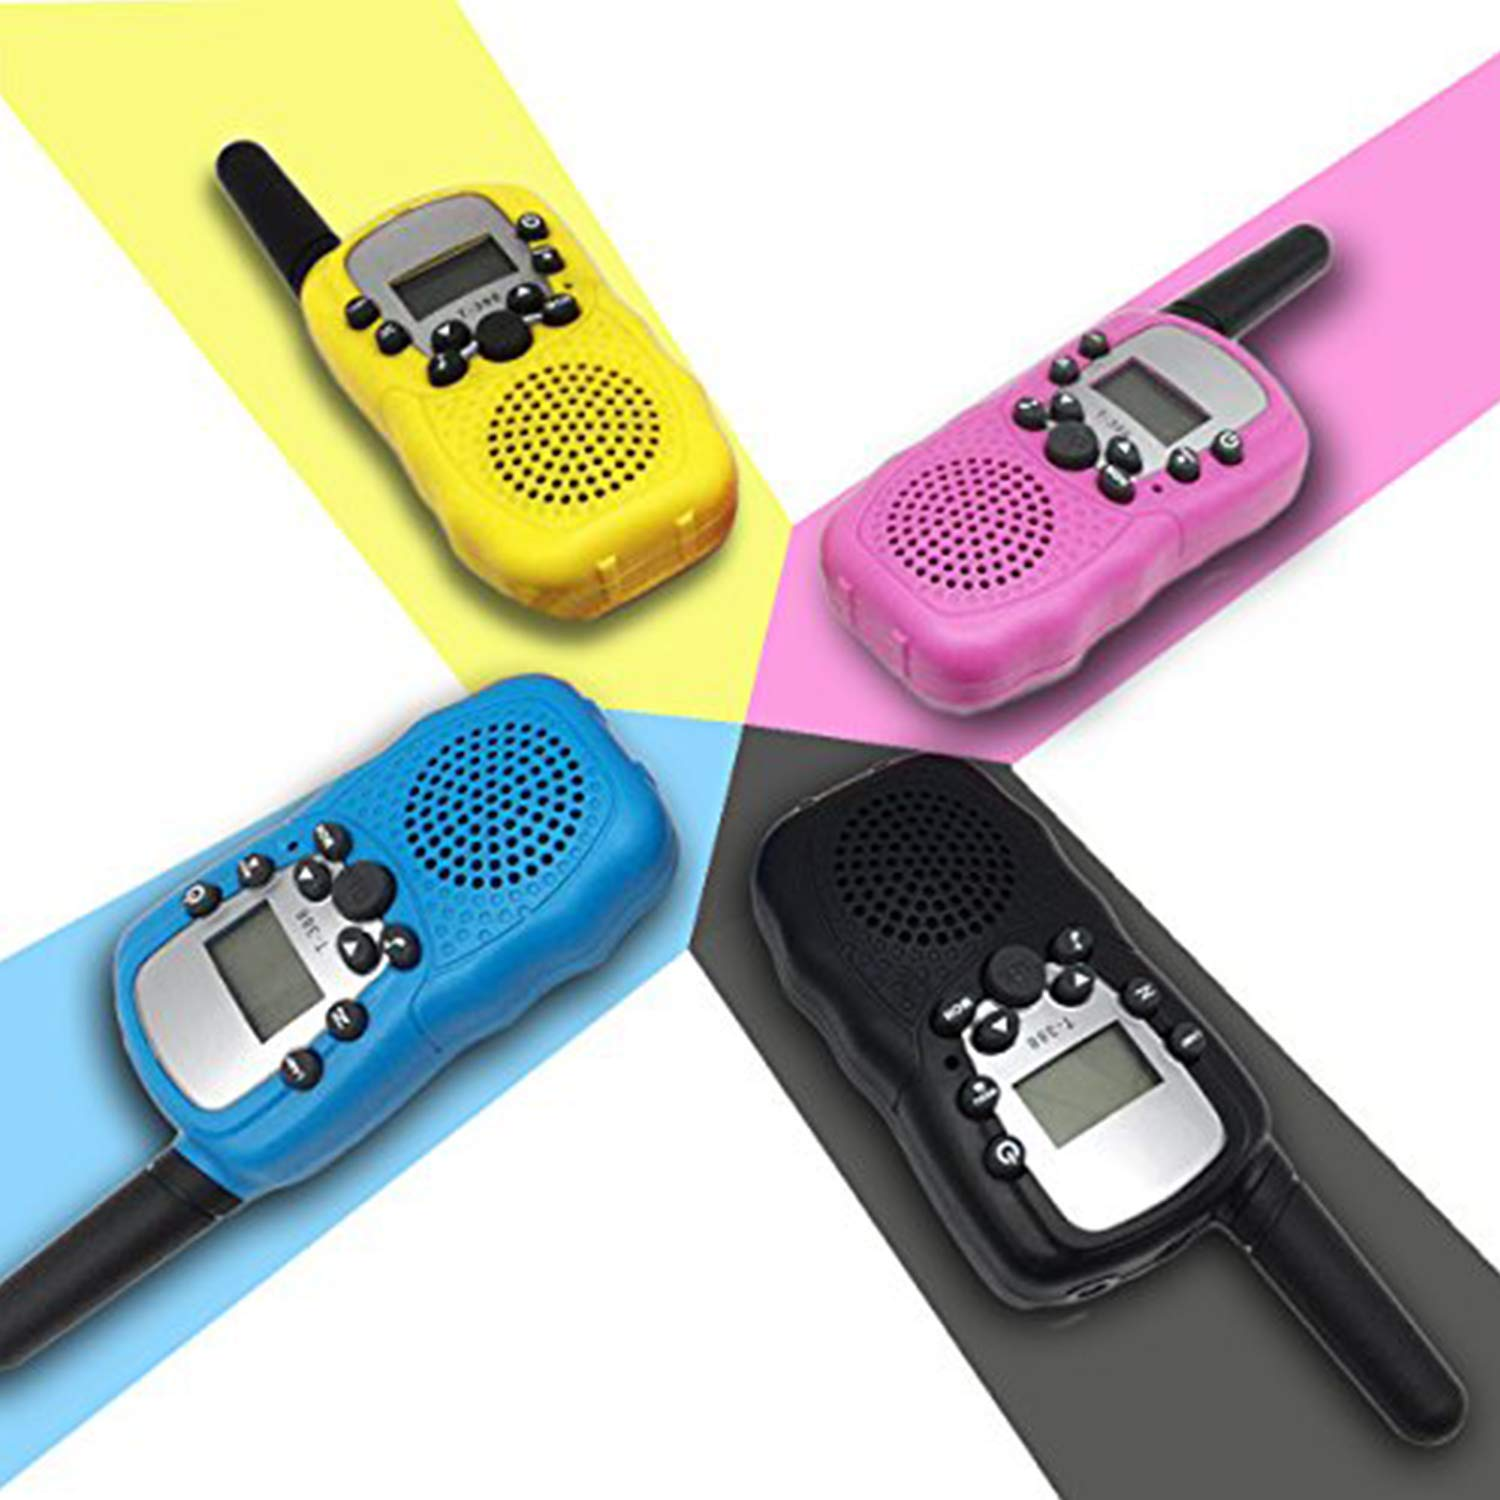 4Pack Kids Walkie Talkie Girls Boys Long Range Two Way Radio 22 Channel LED Flashlight Marine Cruise FRS Camping Accessories Toys Hiking Family Games Outdoor Holiday Birthday Gifts [SUPER CUT] by iGeeKid (Image #2)